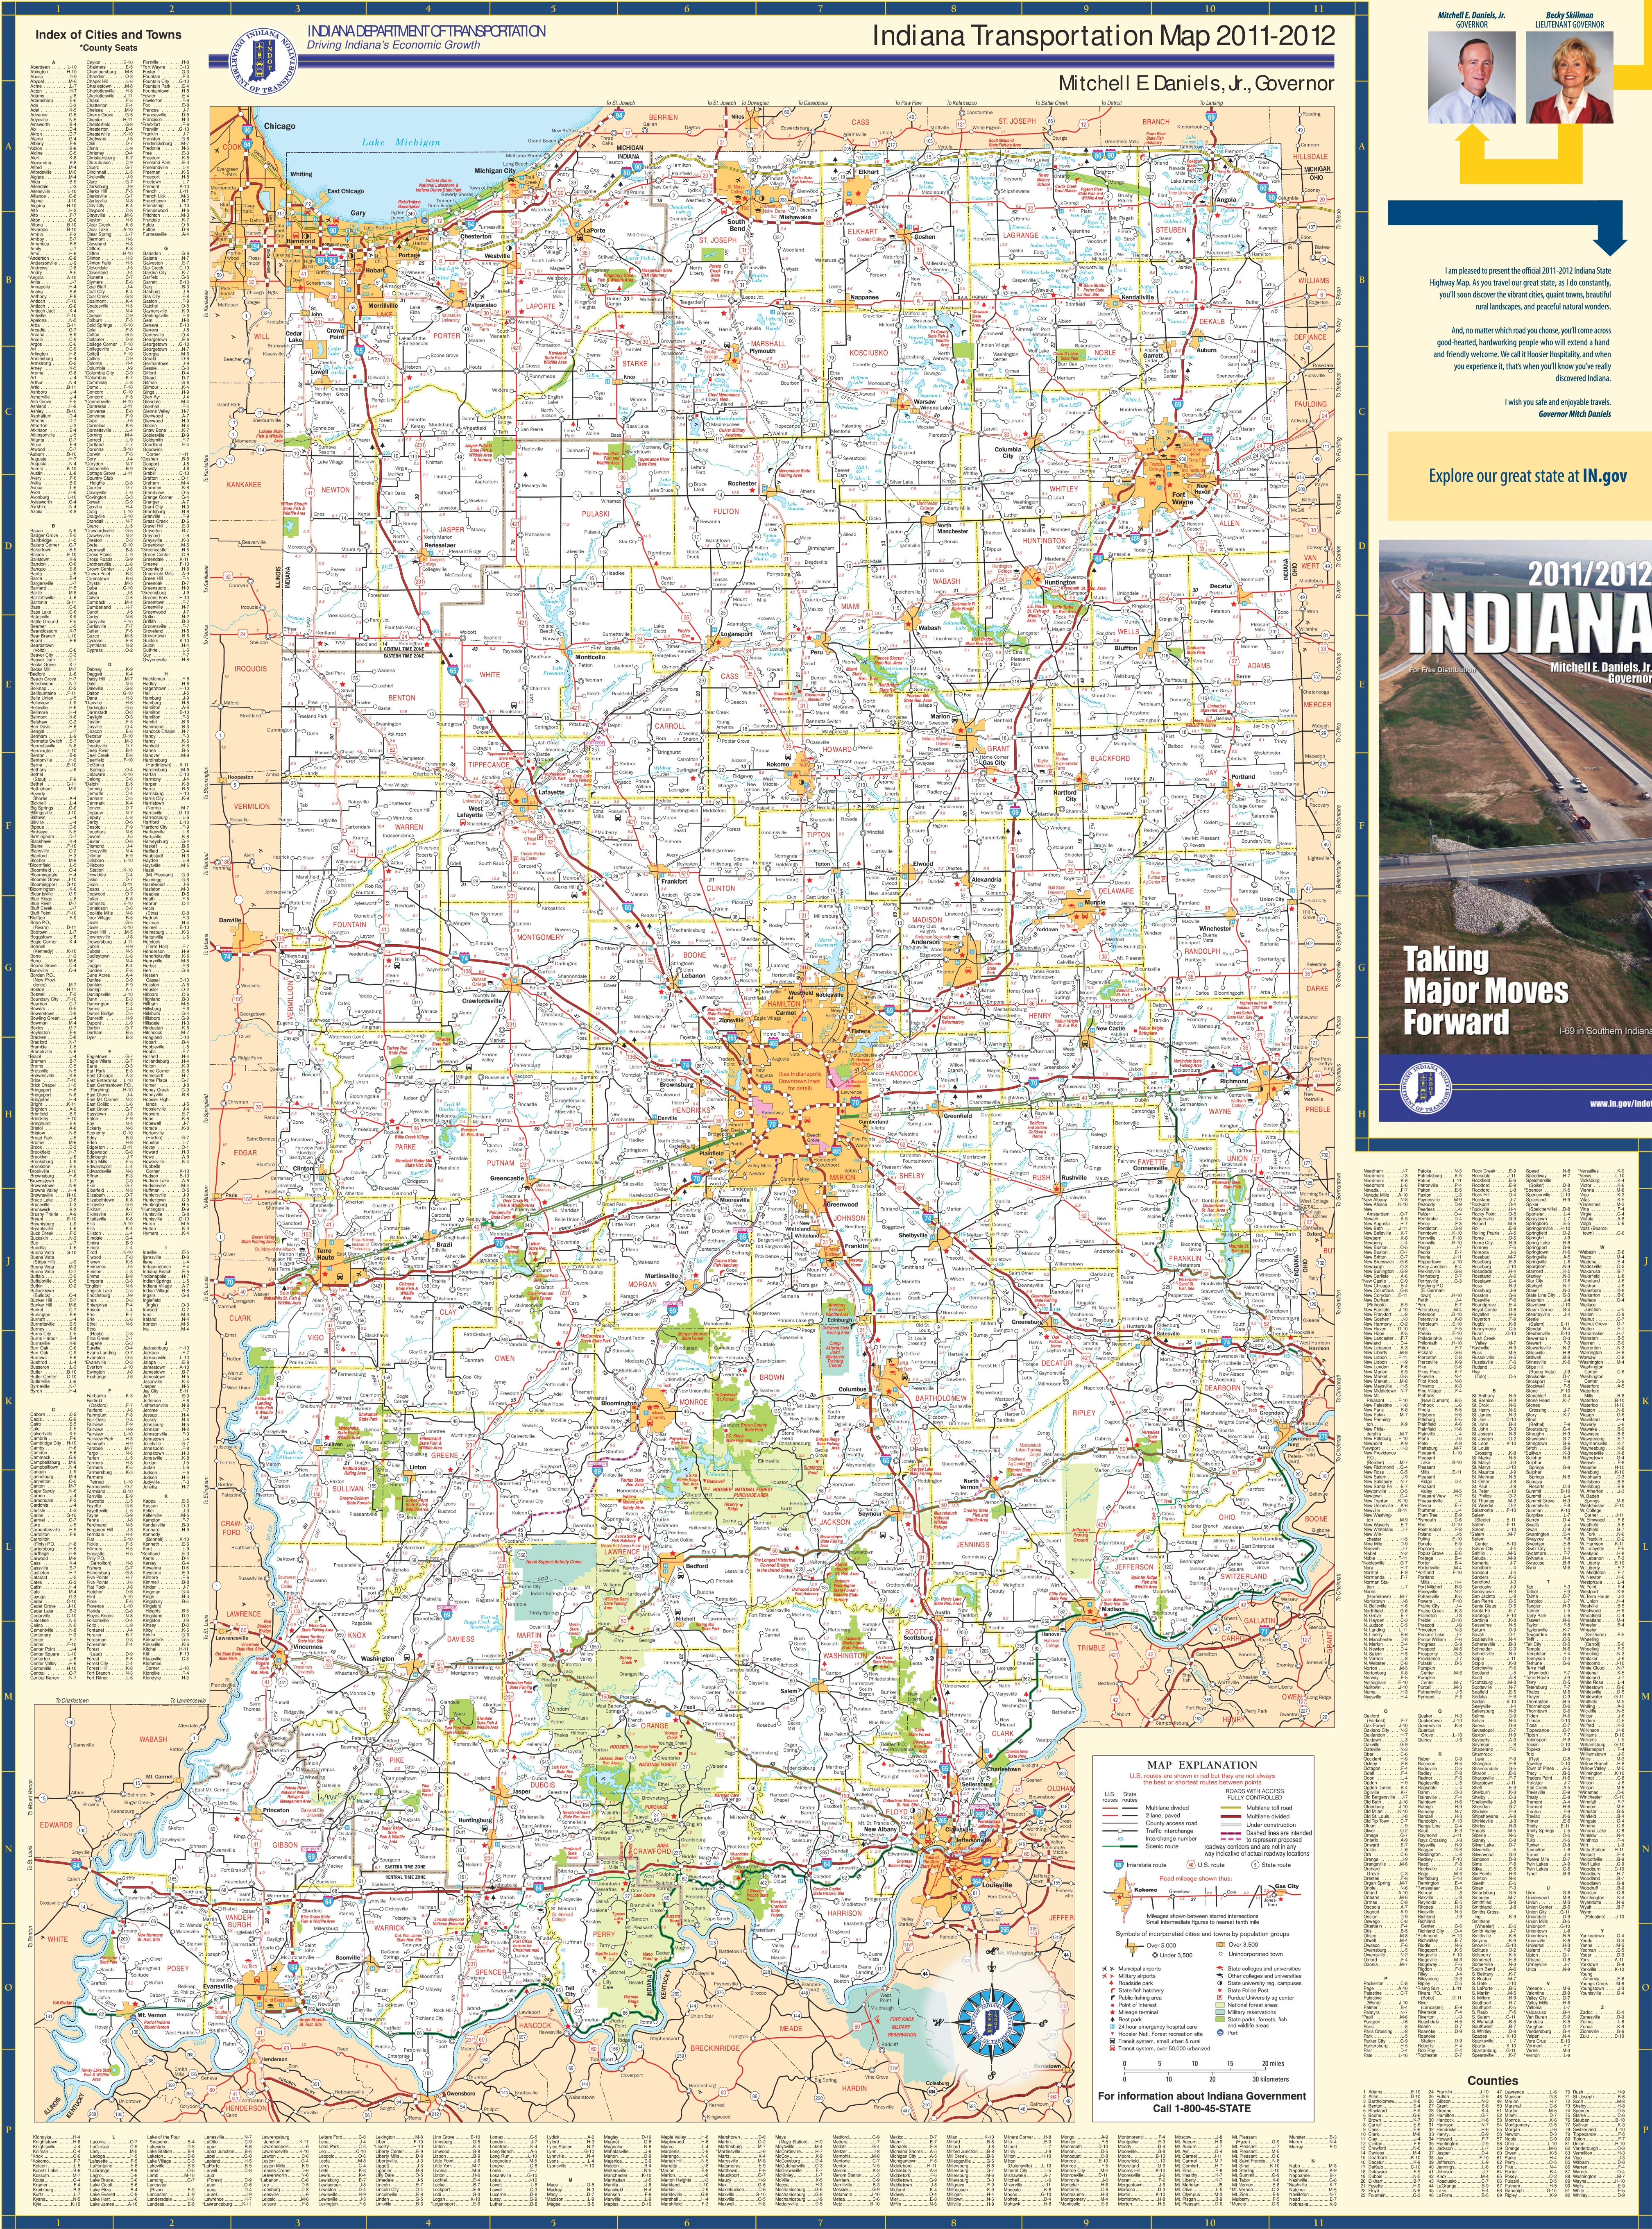 image about Printable Map of Indiana called Hefty thorough map of Indiana with metropolitan areas and metropolitan areas